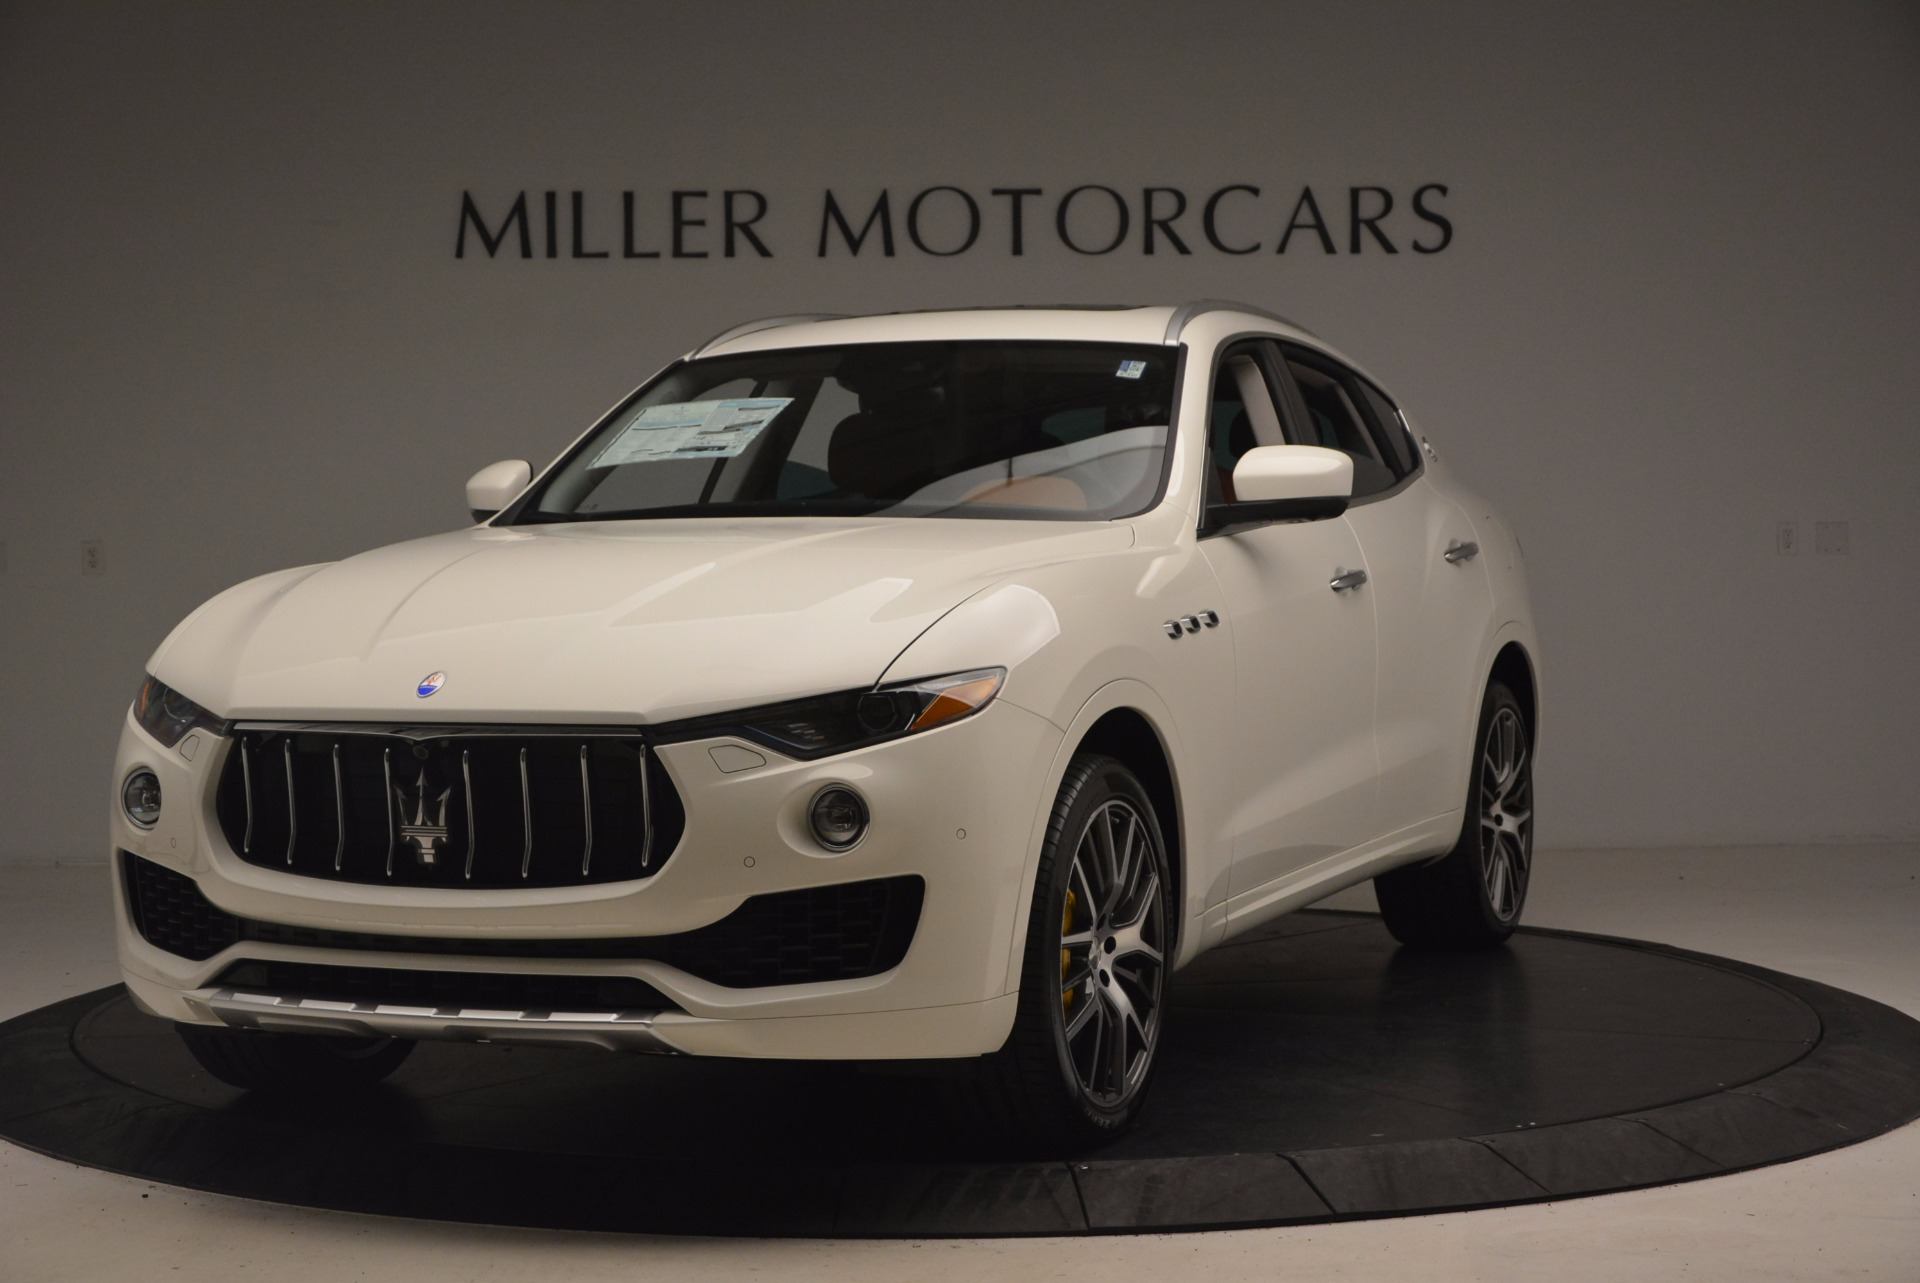 New 2017 Maserati Levante S Q4 for sale Sold at Rolls-Royce Motor Cars Greenwich in Greenwich CT 06830 1